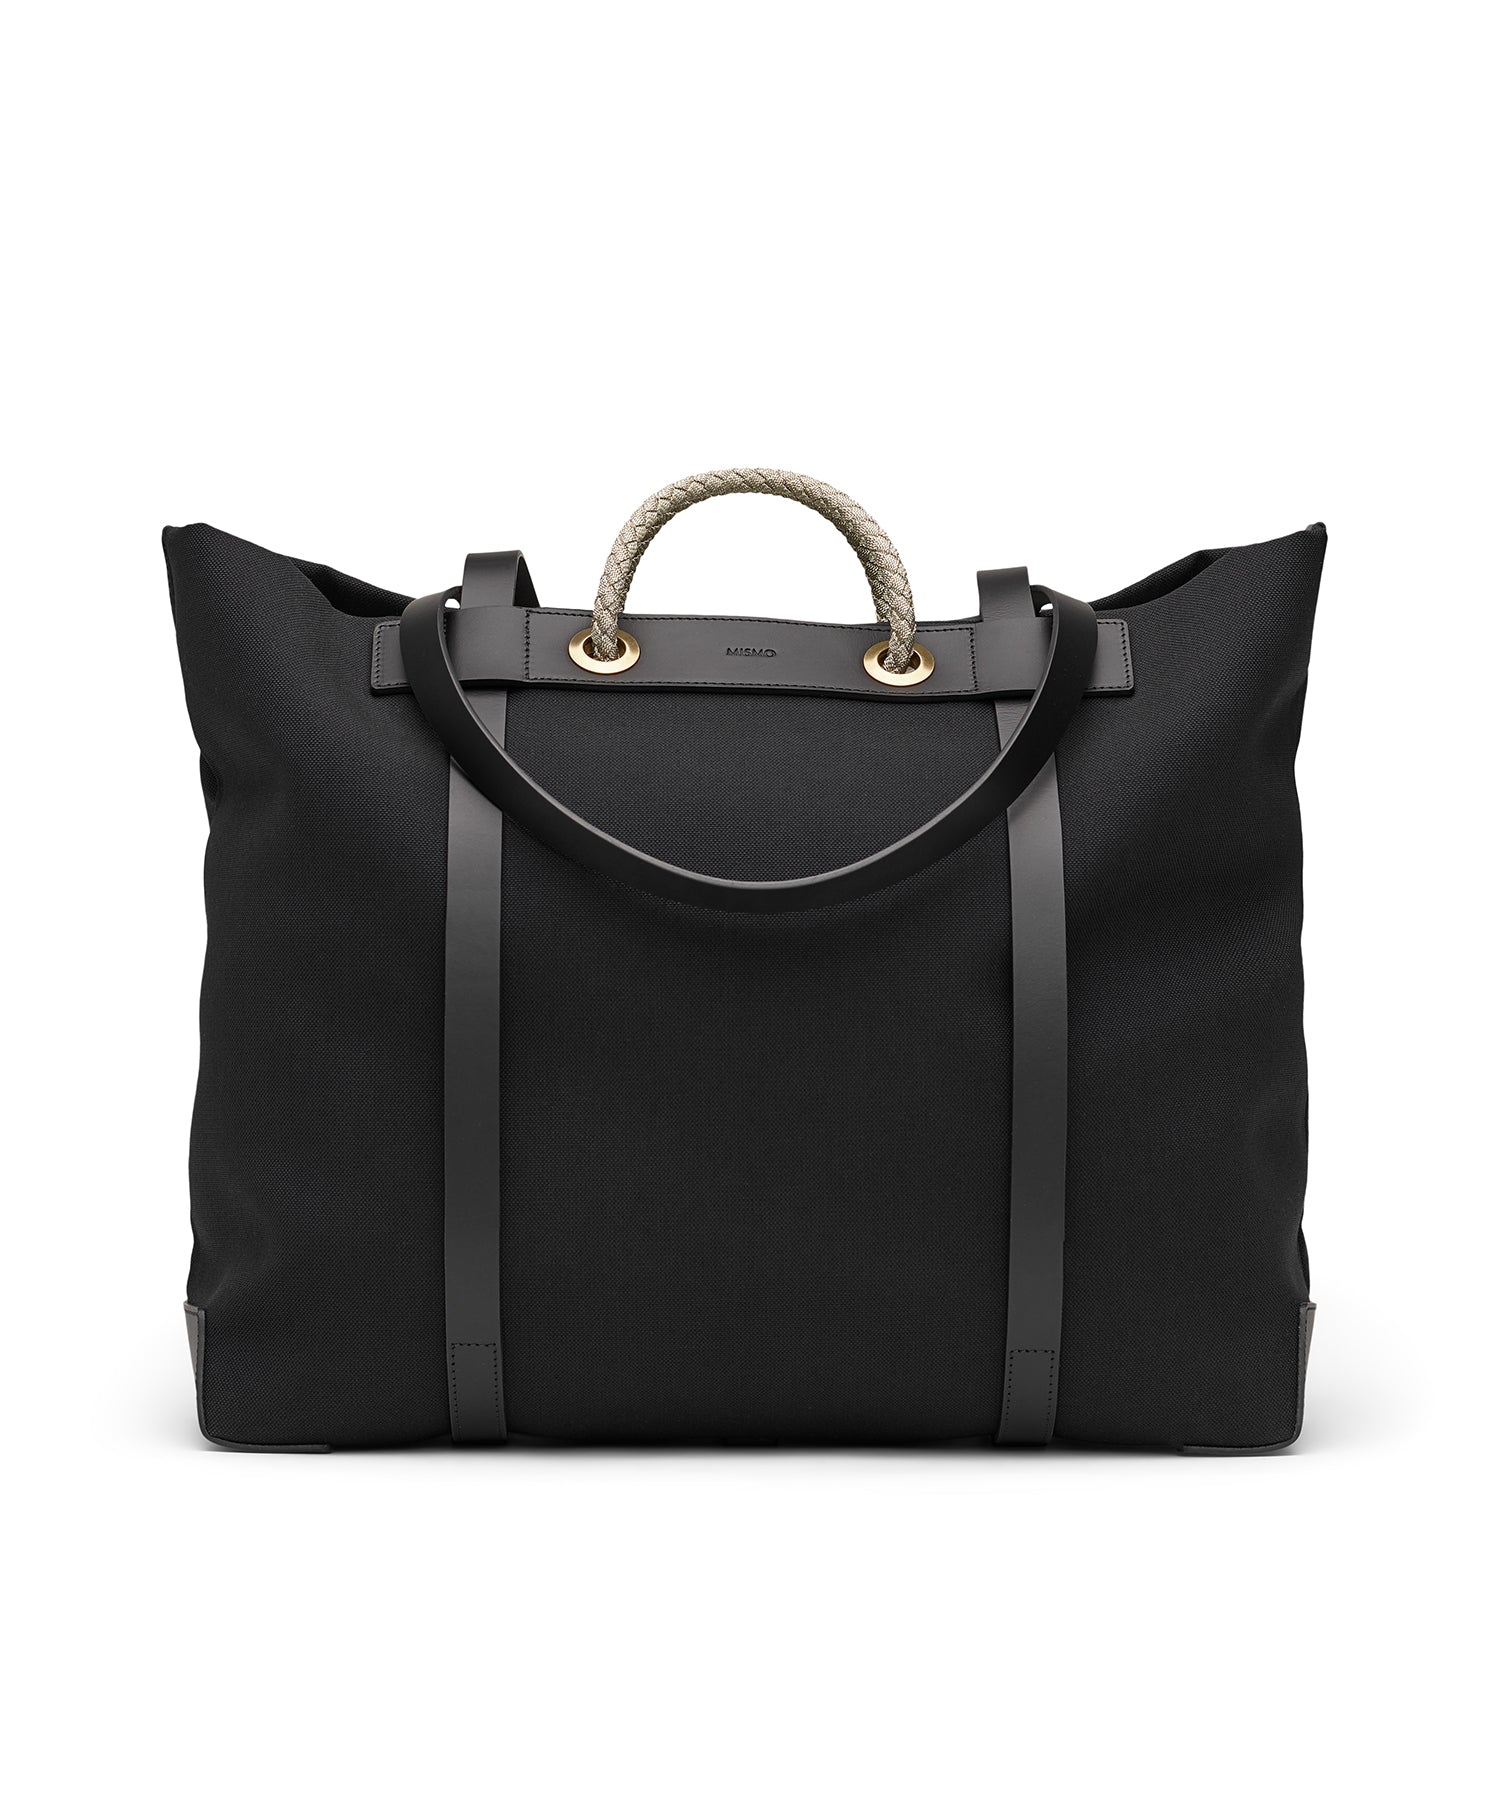 MISMO M/S Seaside Tote in Black